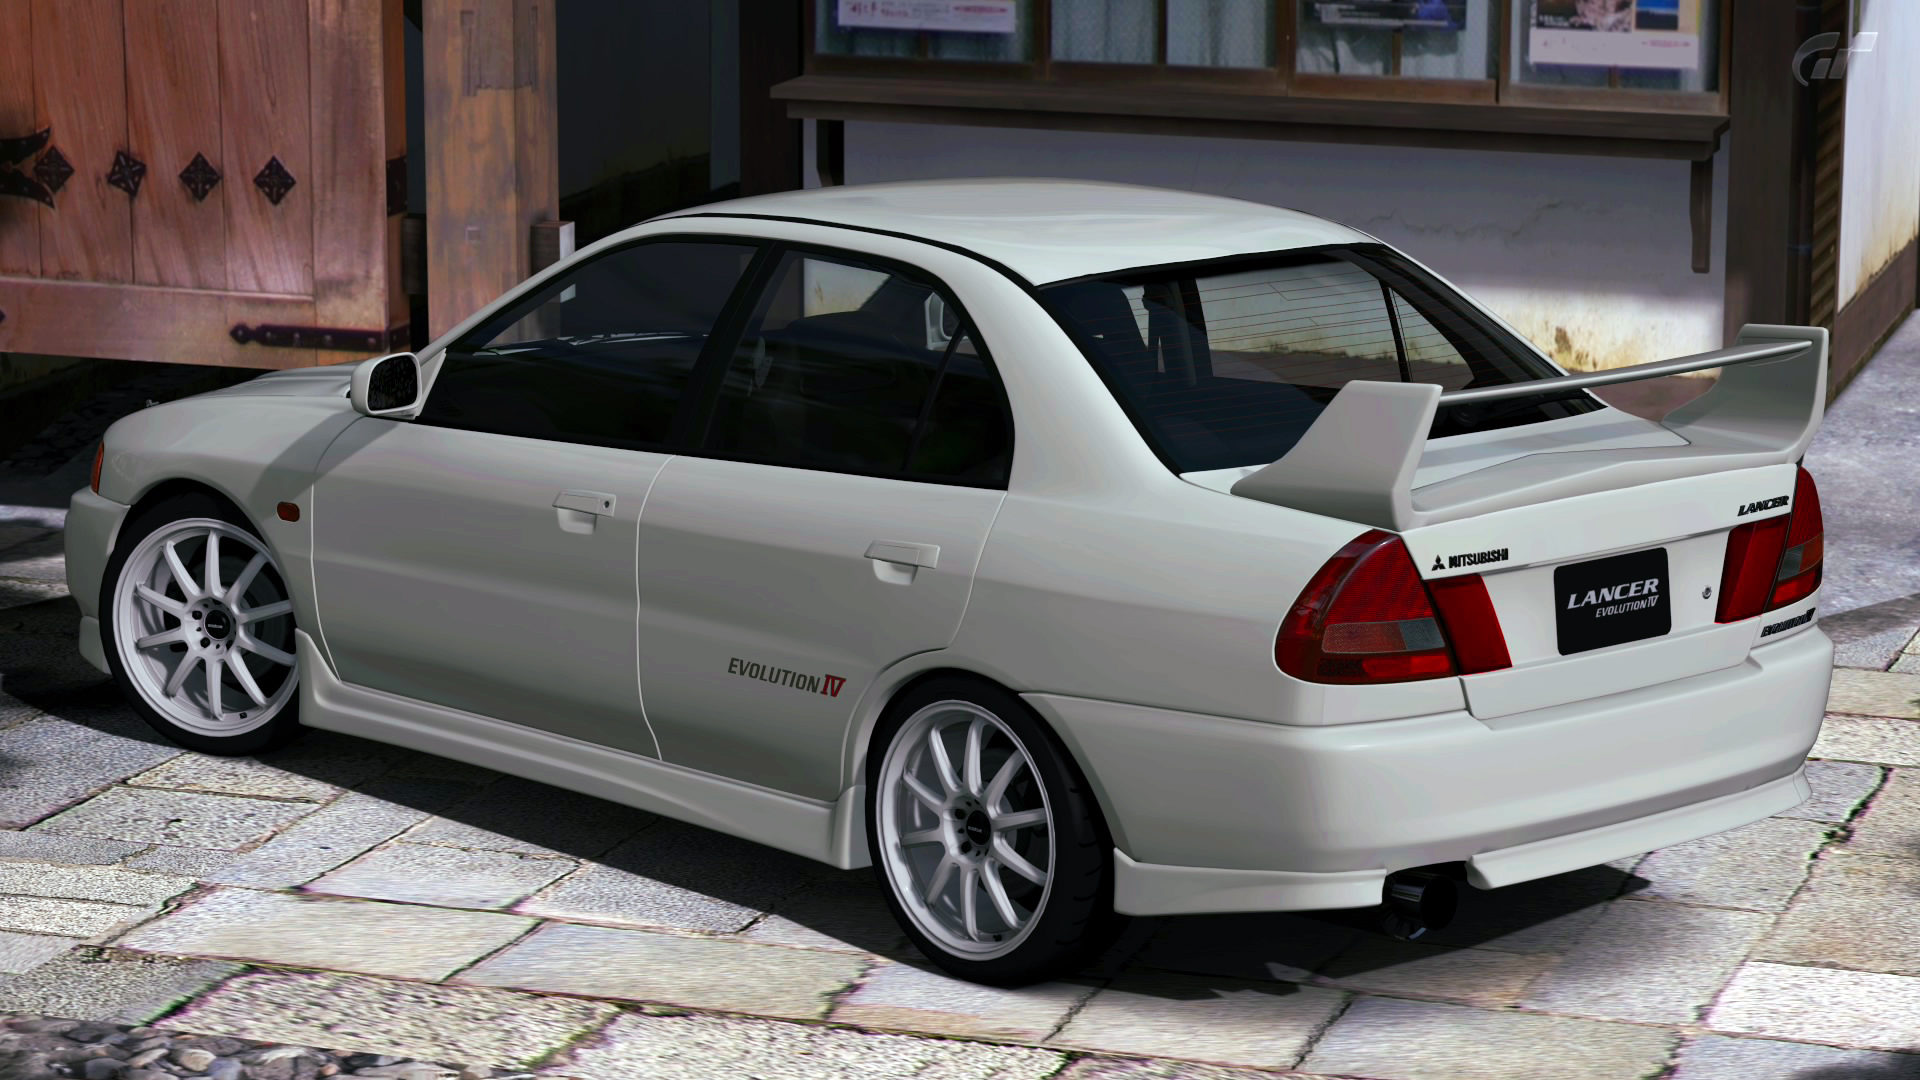 Mitsubishi Lancer Evolution IV 1996 - 1998 Sedan #2